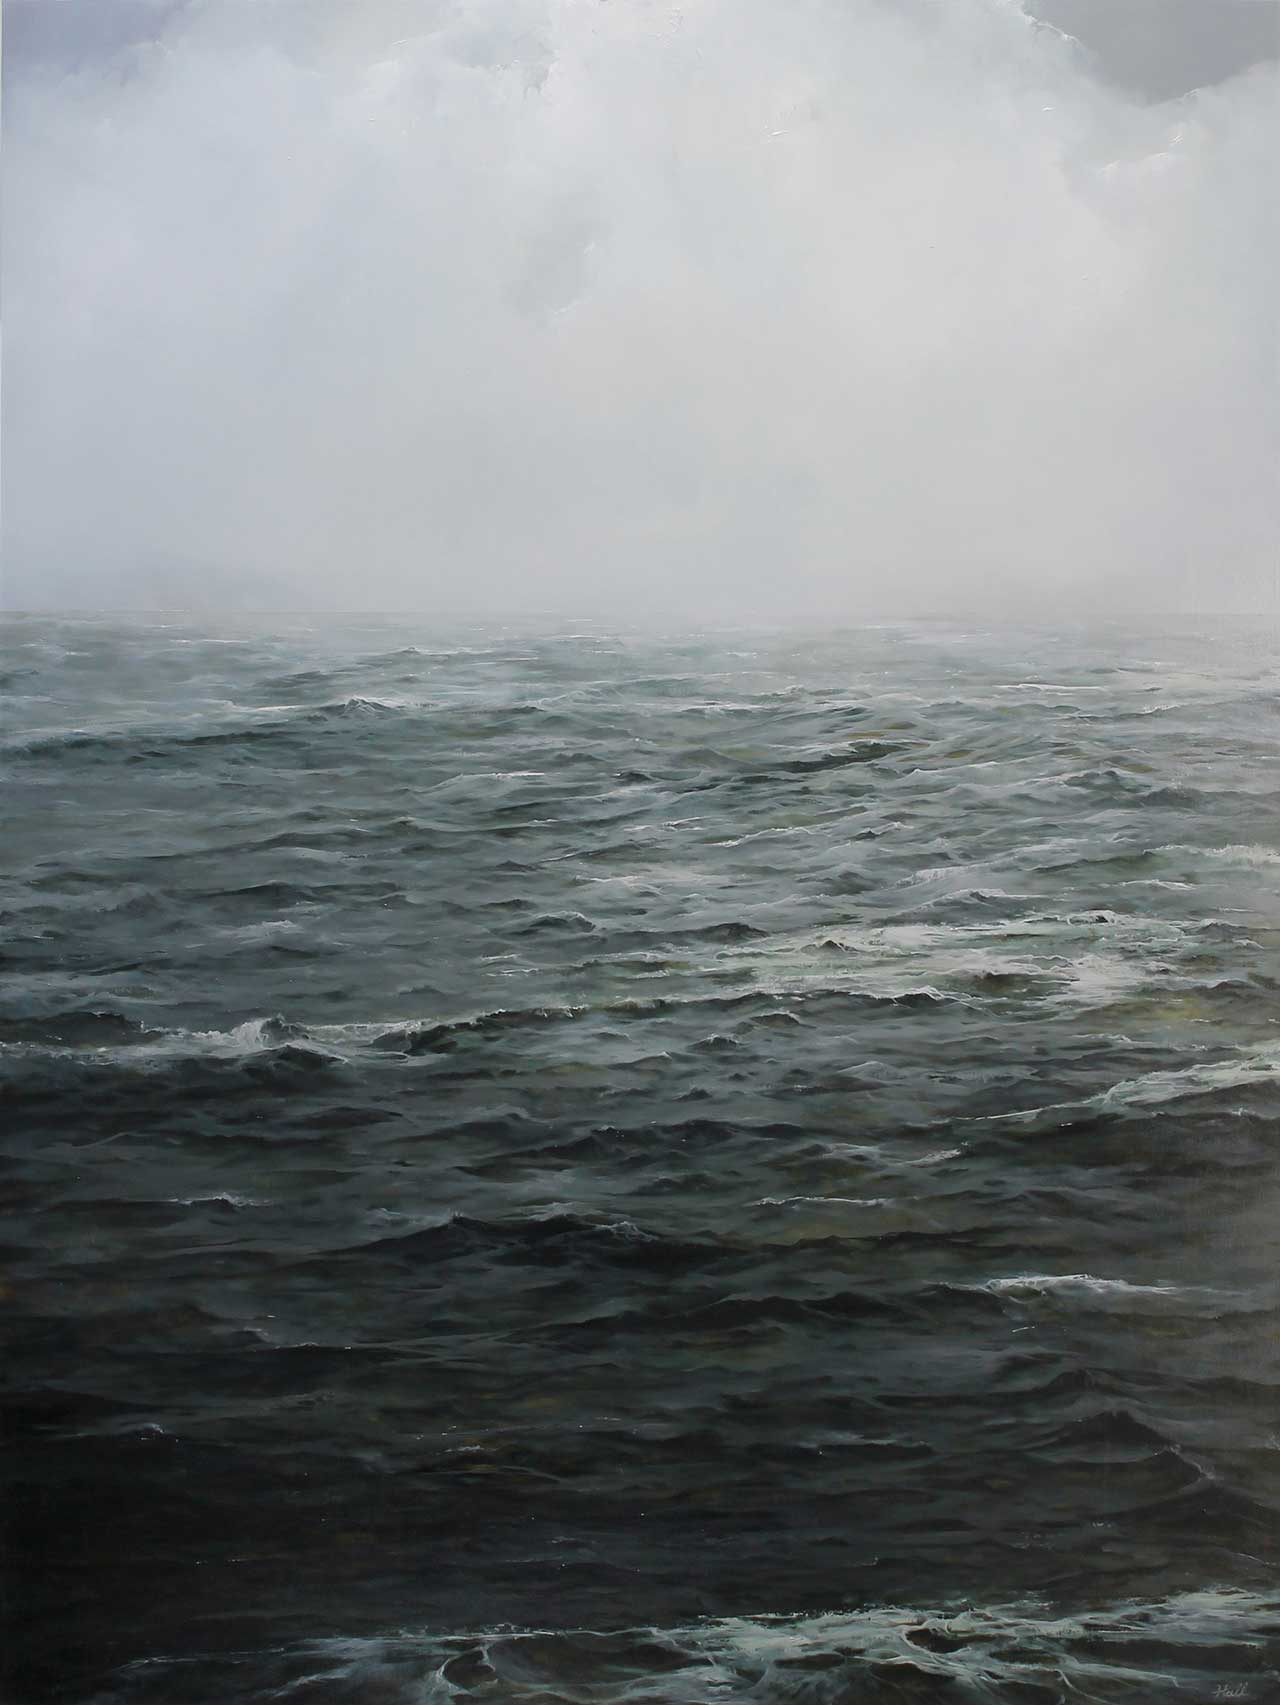 """Adam Hall,Breath In Breath Out, 30"""" x 40"""", oil on panel. CourtesyRobert Lange Studios and the artist."""